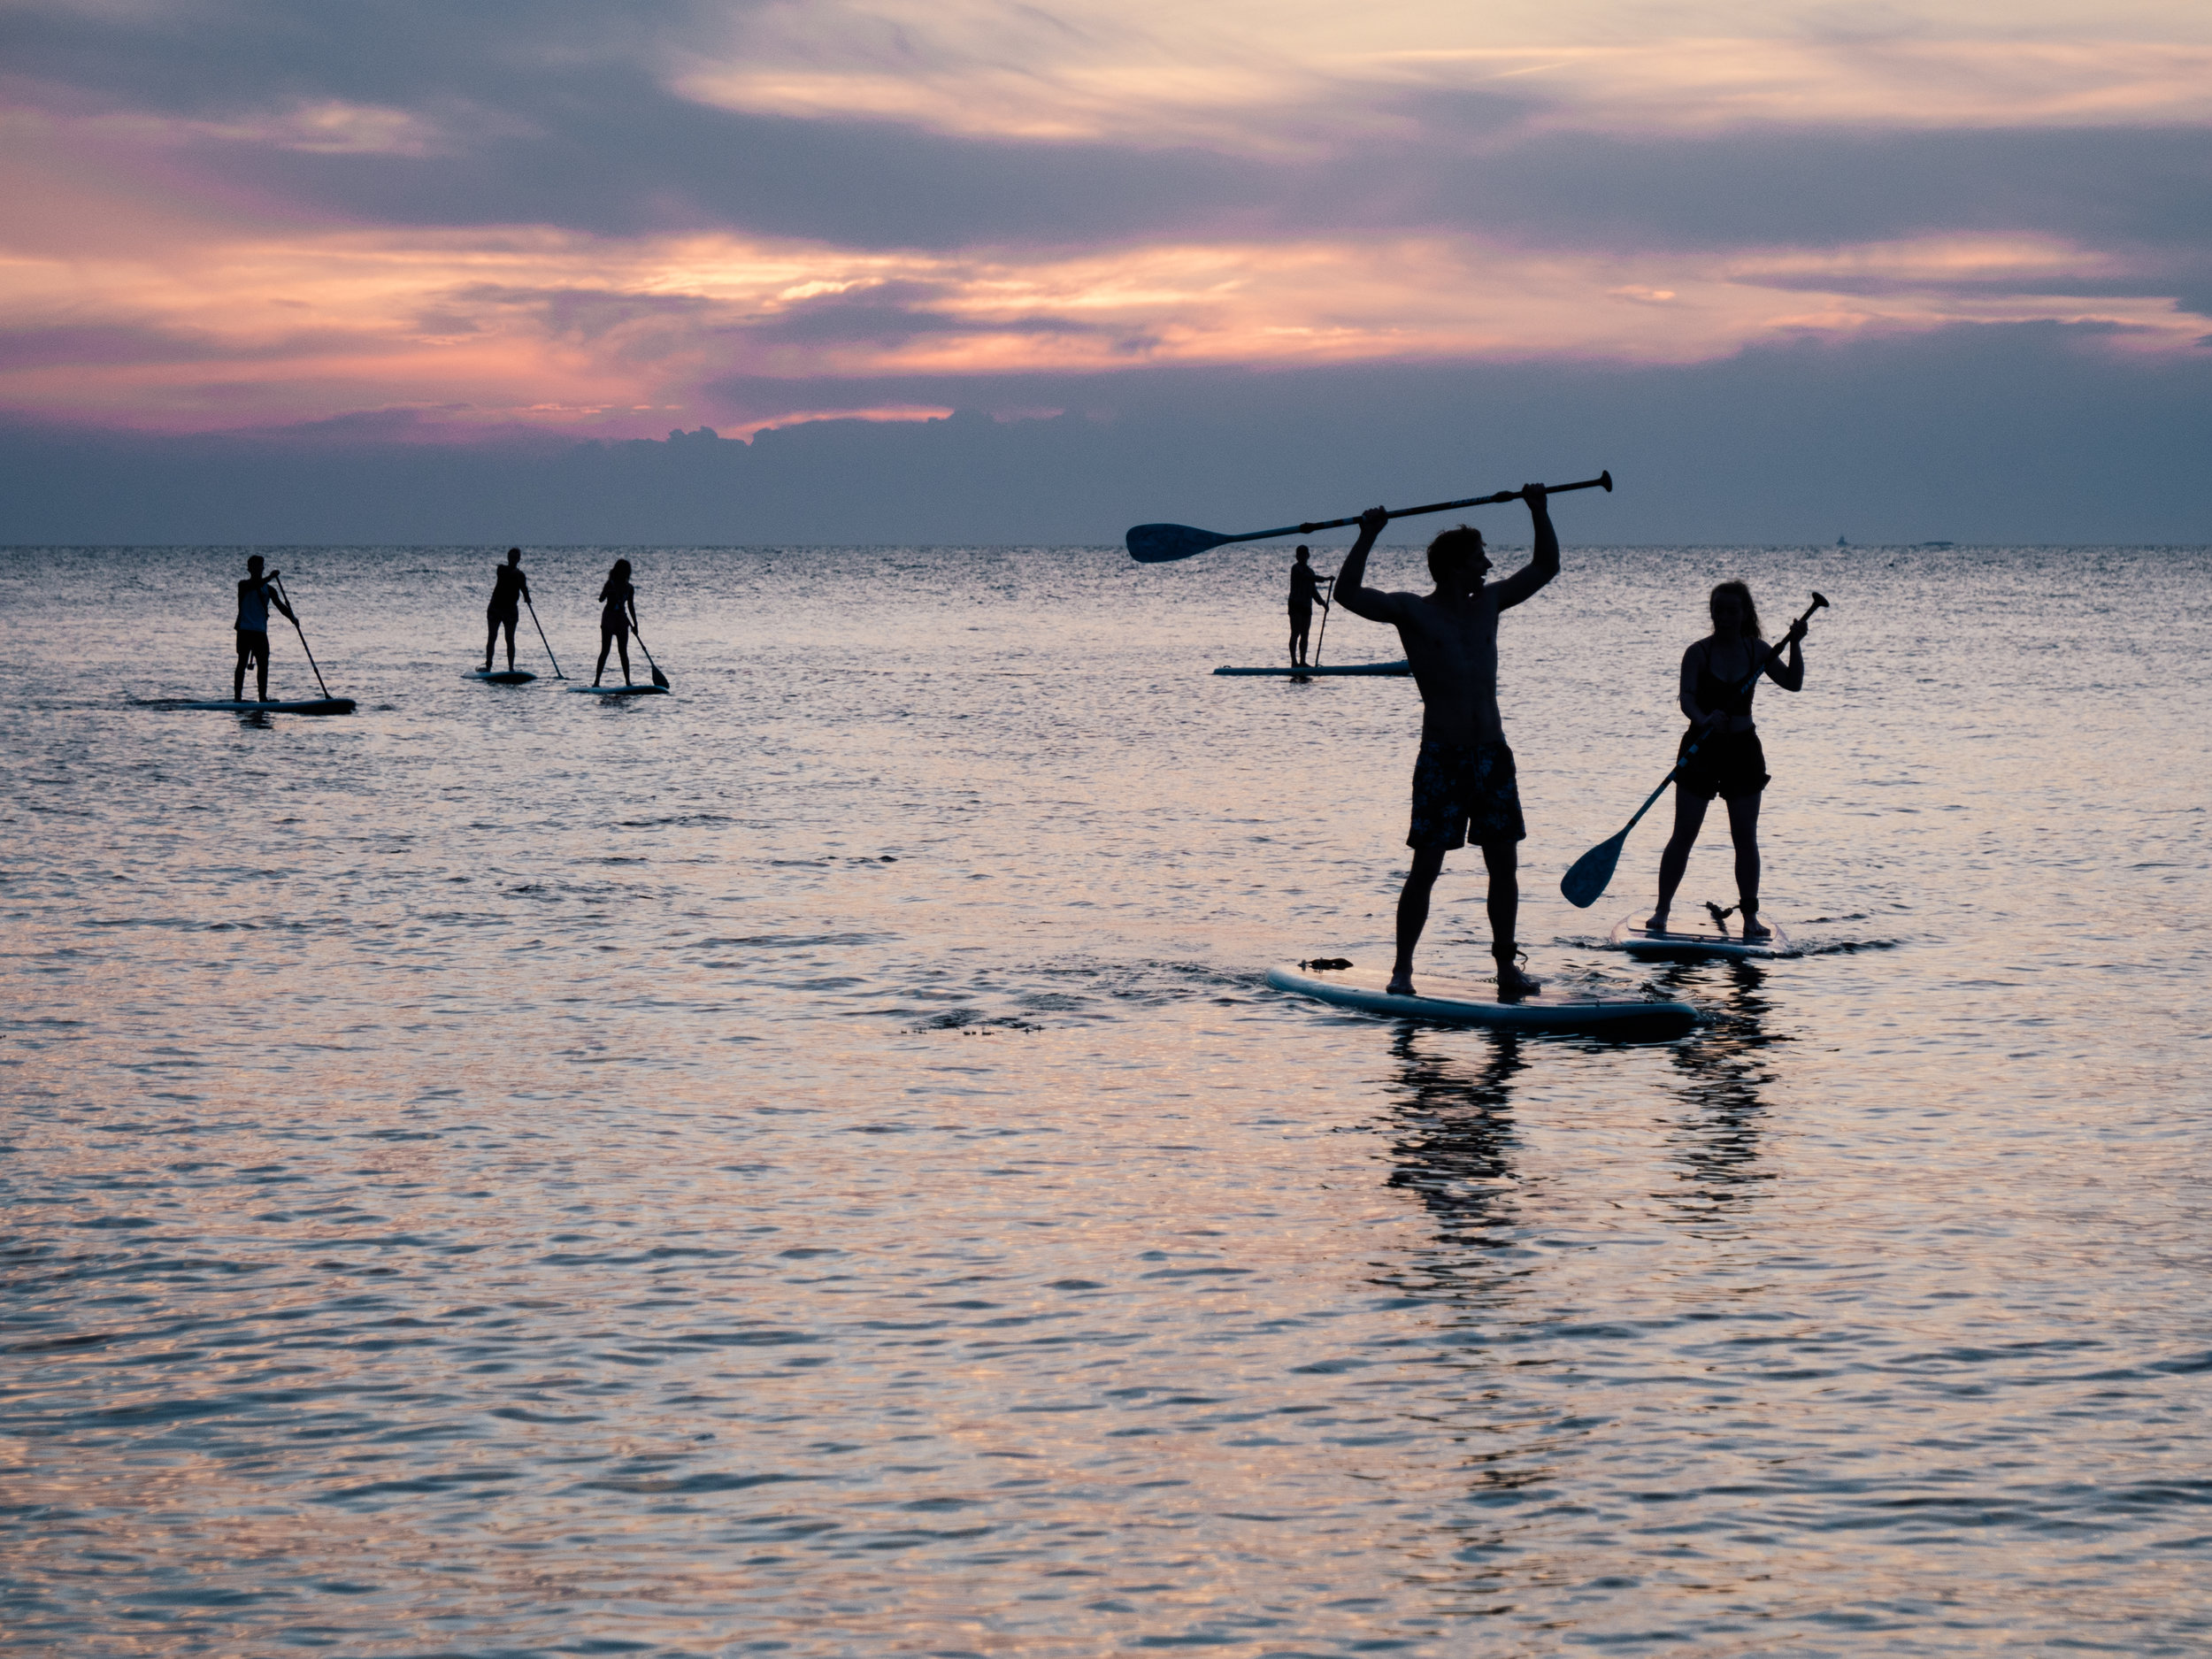 Avalon Stand Up Paddle Board Rentals - Stand up paddle Catalina Island's crystal clear waters. From the vantage point of standing on water you can see the marine life teaming below. Our paddle boards are extremely stable and easy to use. Rental includes instruction, life vest and paddle